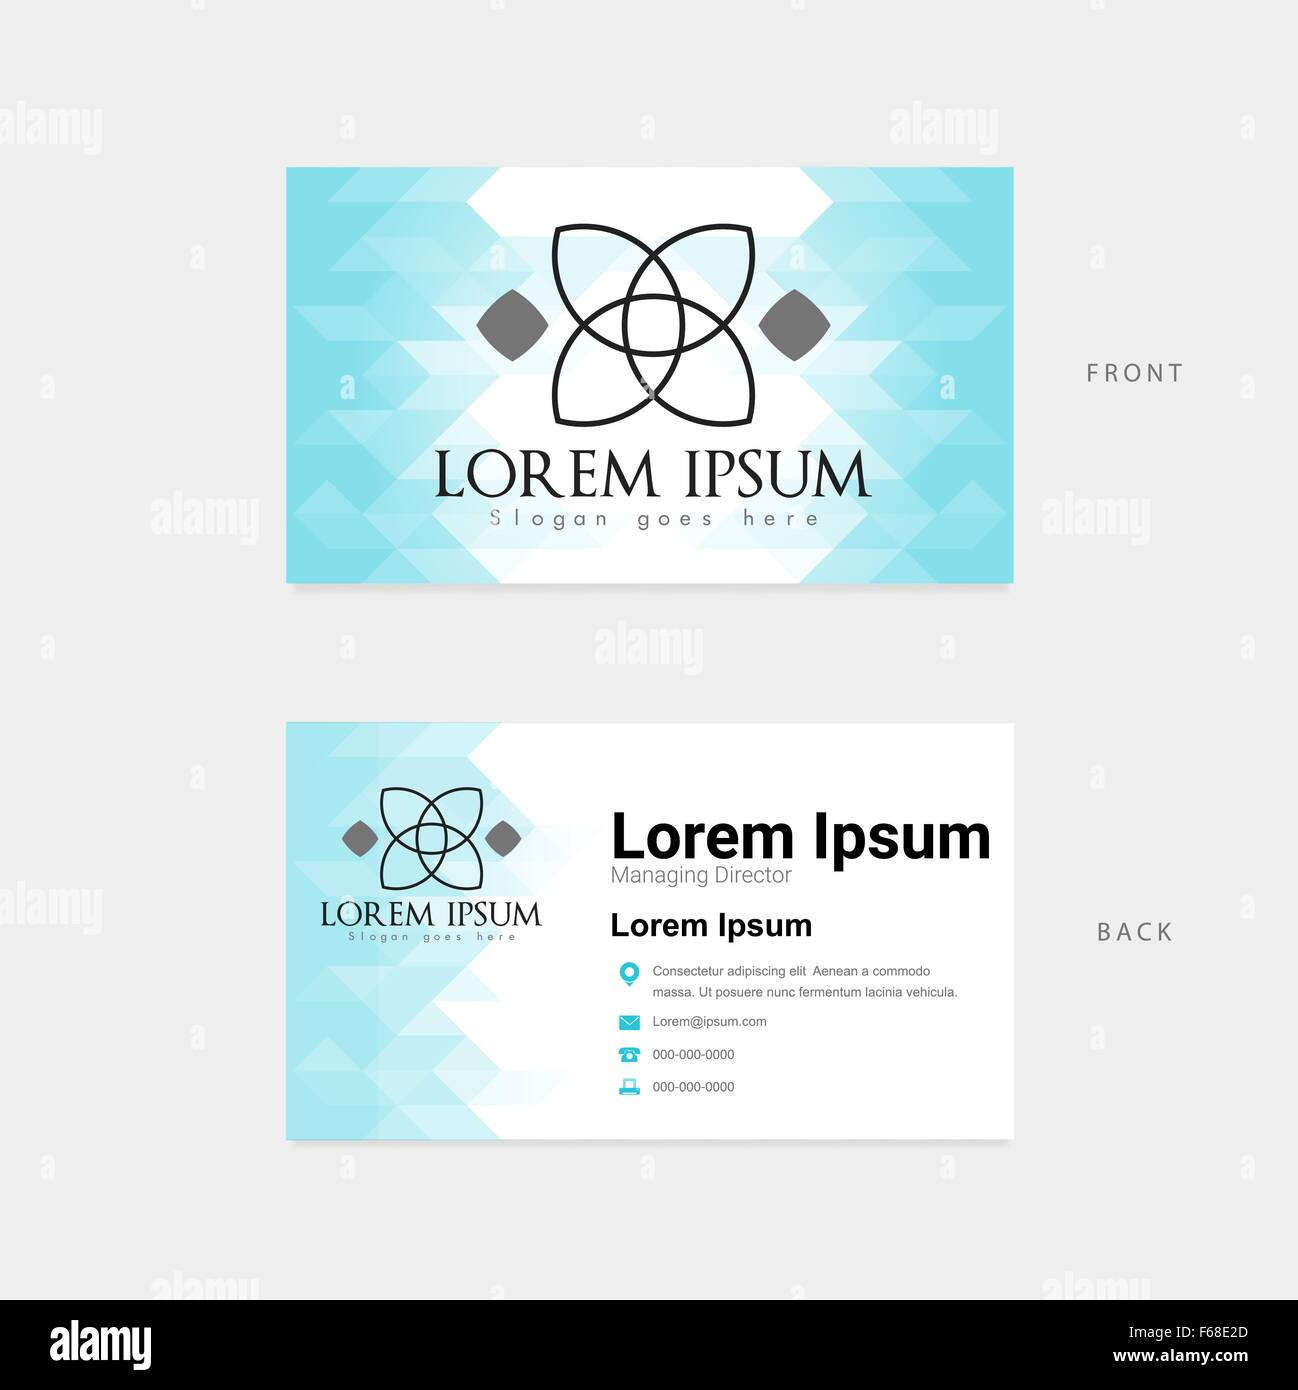 Modern template horizontal business card stock vector art modern template horizontal business card colourmoves